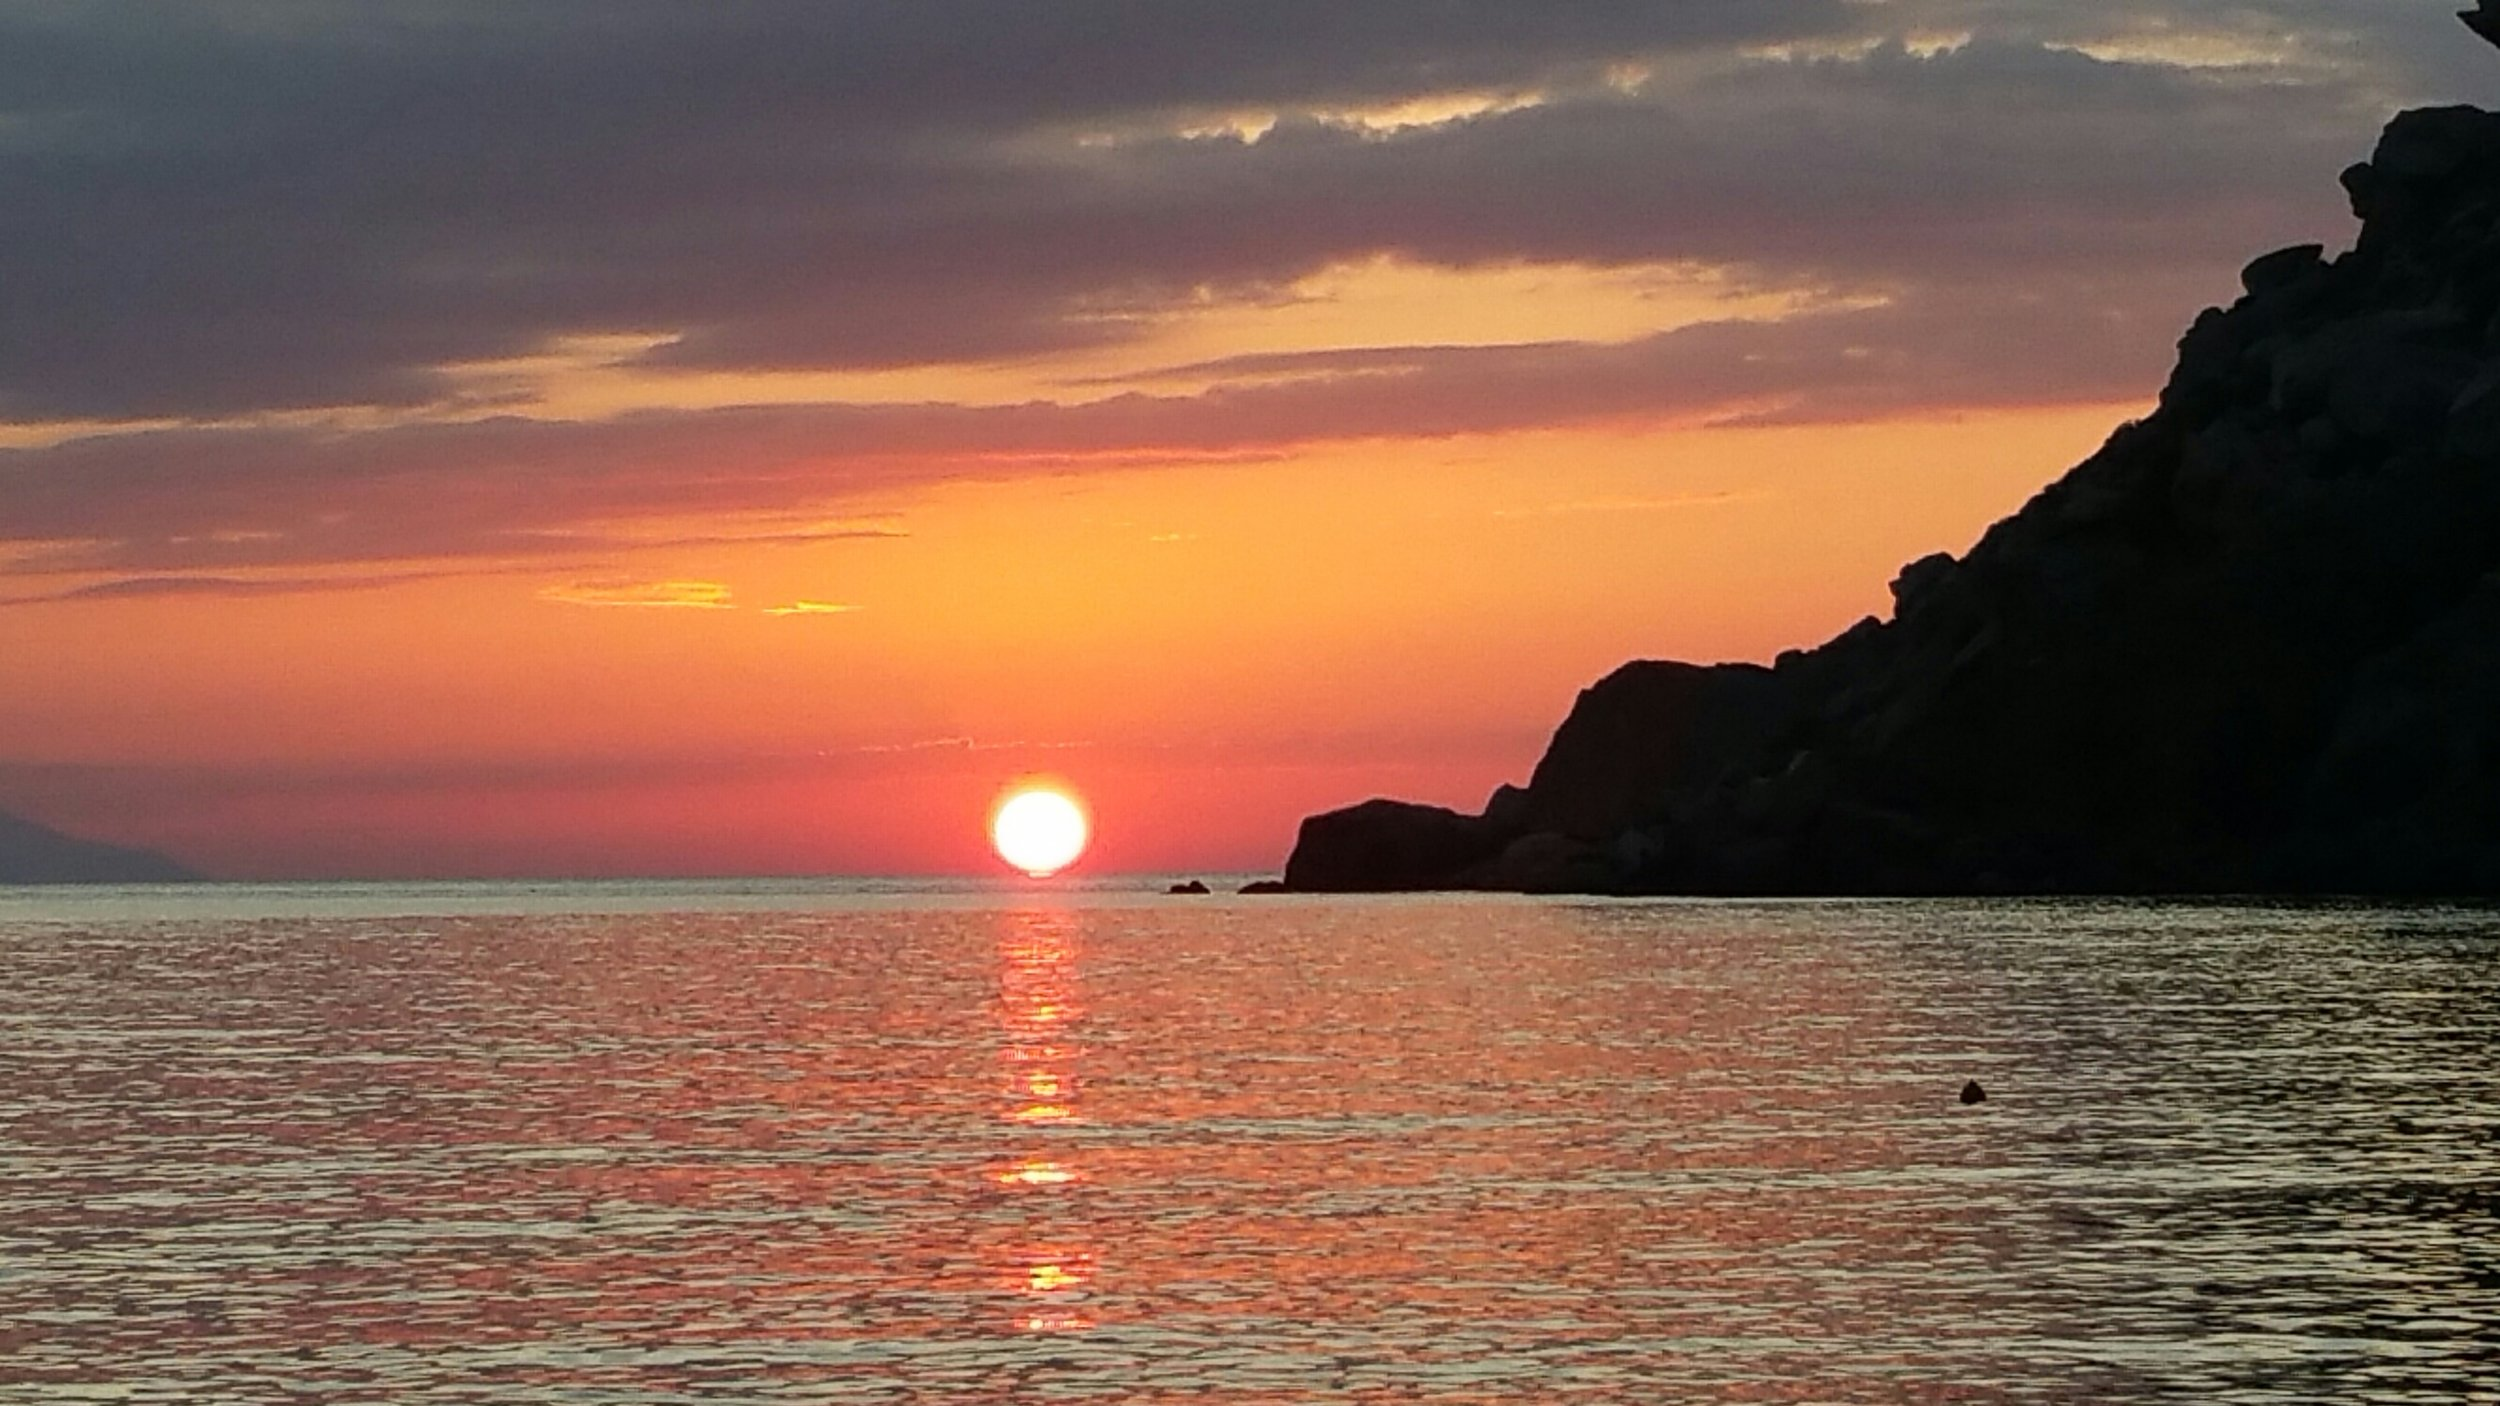 Toli sunset (the only place on the island to see the sun set over the water).